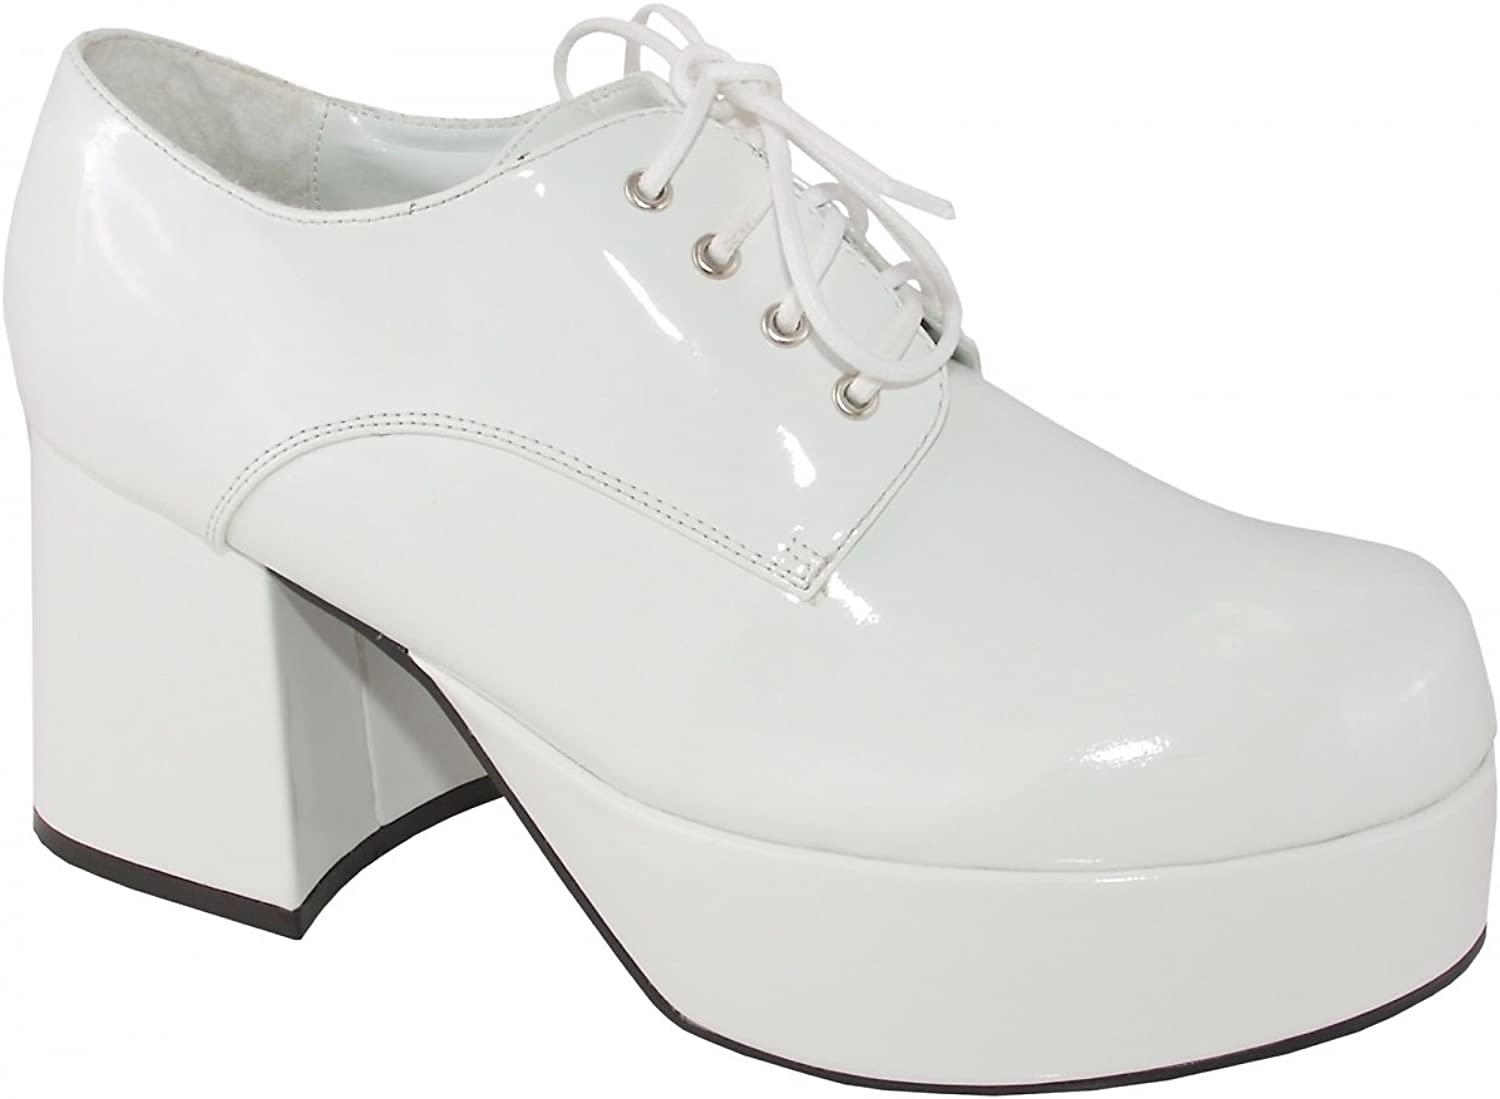 Ellie shoes 33632 White Pimp shoes Adult Size Medium 10-11